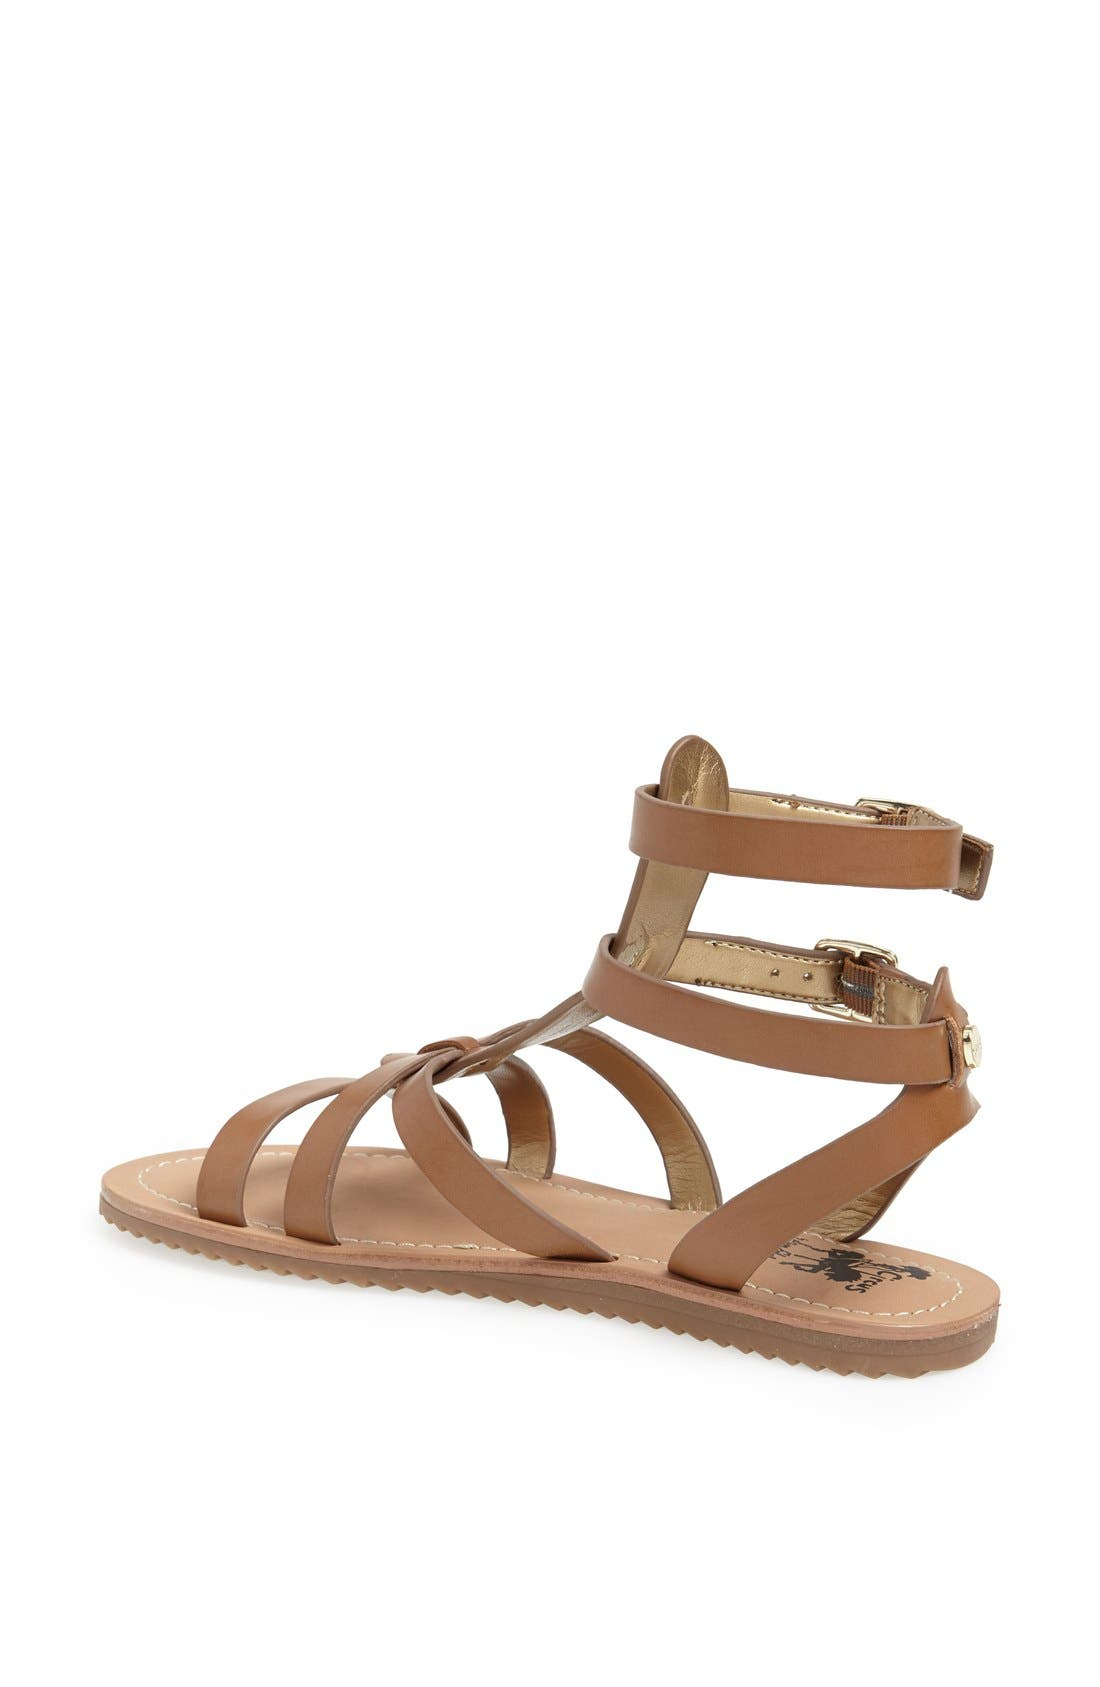 ,                             'Selma' Gladiator Sandal,                             Alternate thumbnail 14, color,                             200